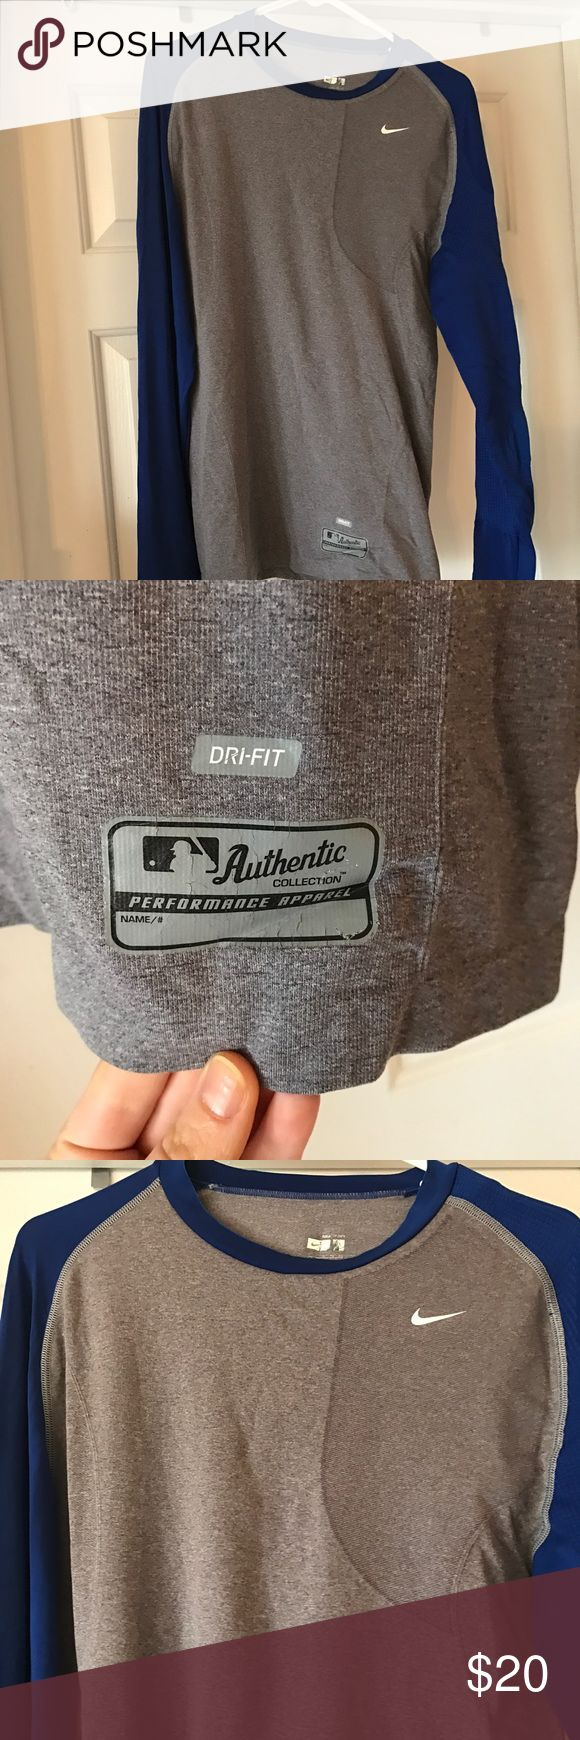 Nike men's Thermal wear This is a really cool shirt! My husband was a left handed college pitcher and this is a dri fit thermal shirt has special thermal elements in the left chest and arm. You can see the darker gray on the left chest showing where the additional thermal is. Size XL Nike Shirts Tees - Long Sleeve